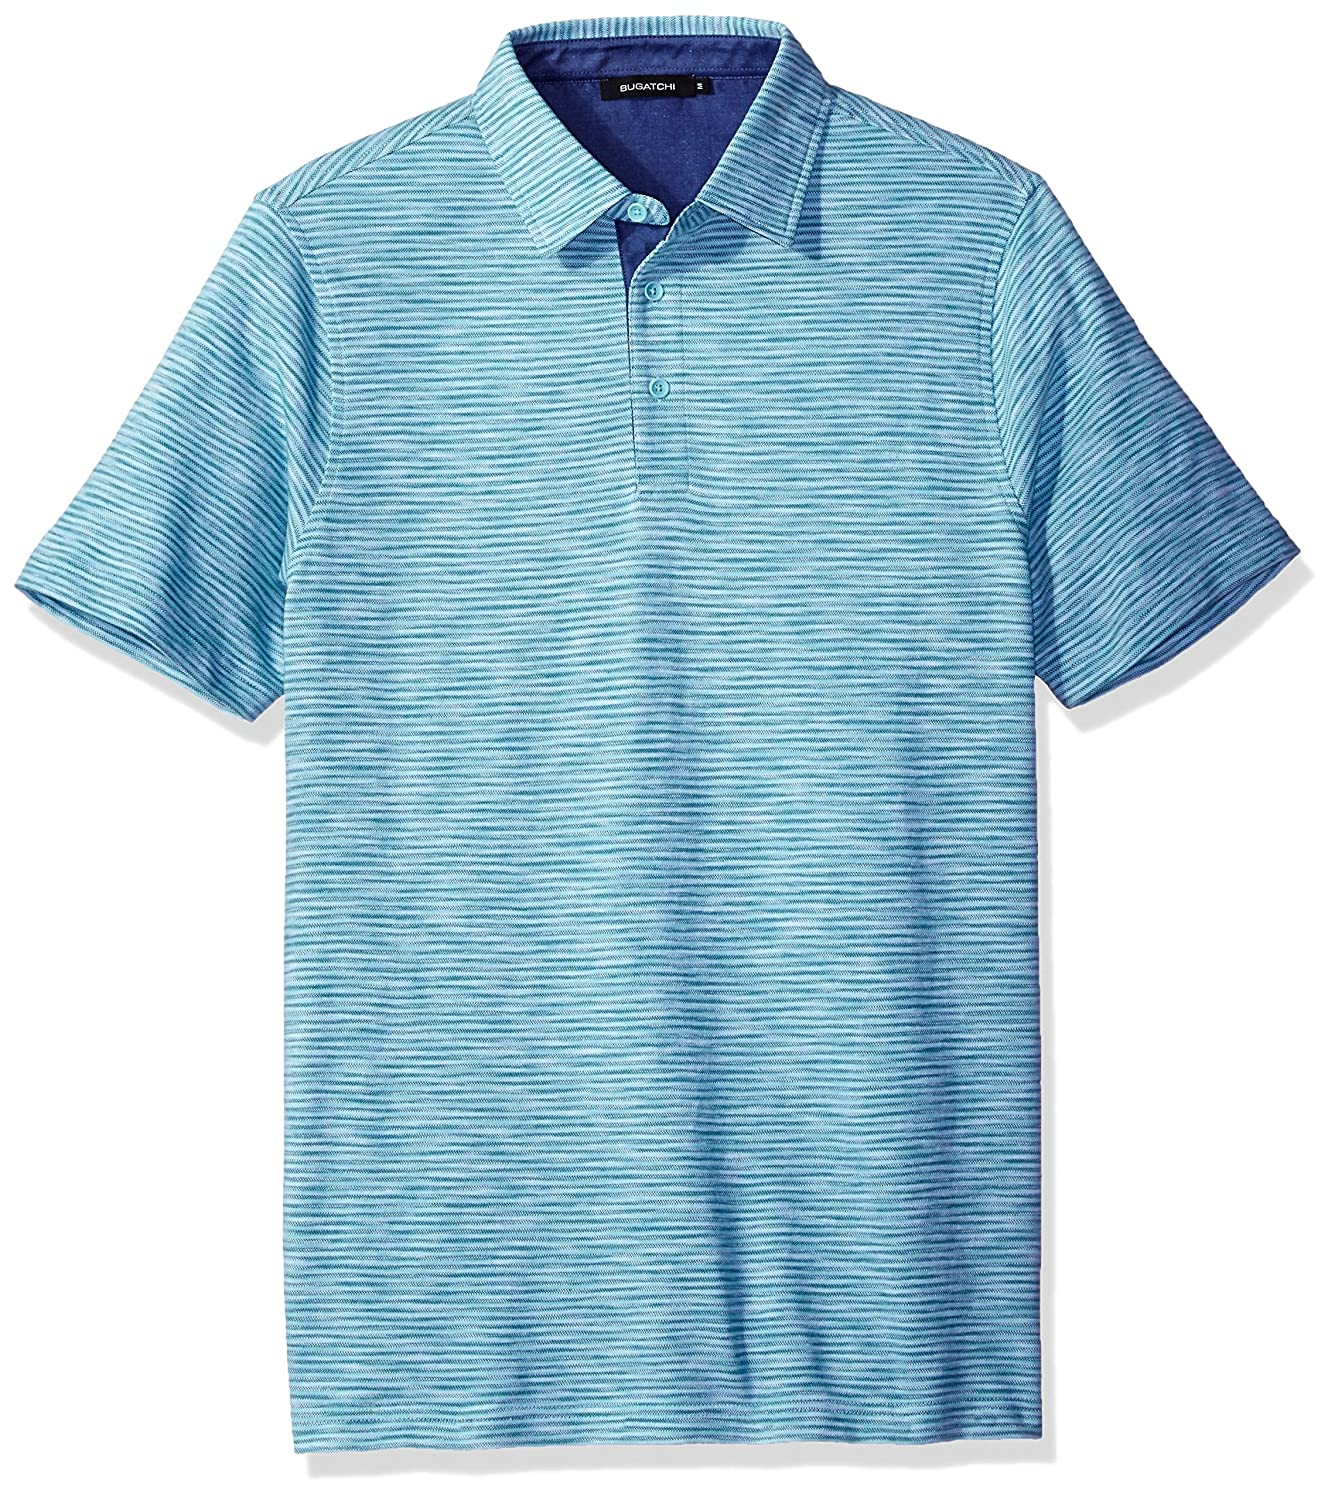 Top 10 Wholesale Cactus Man Clothing Chinabrands Com